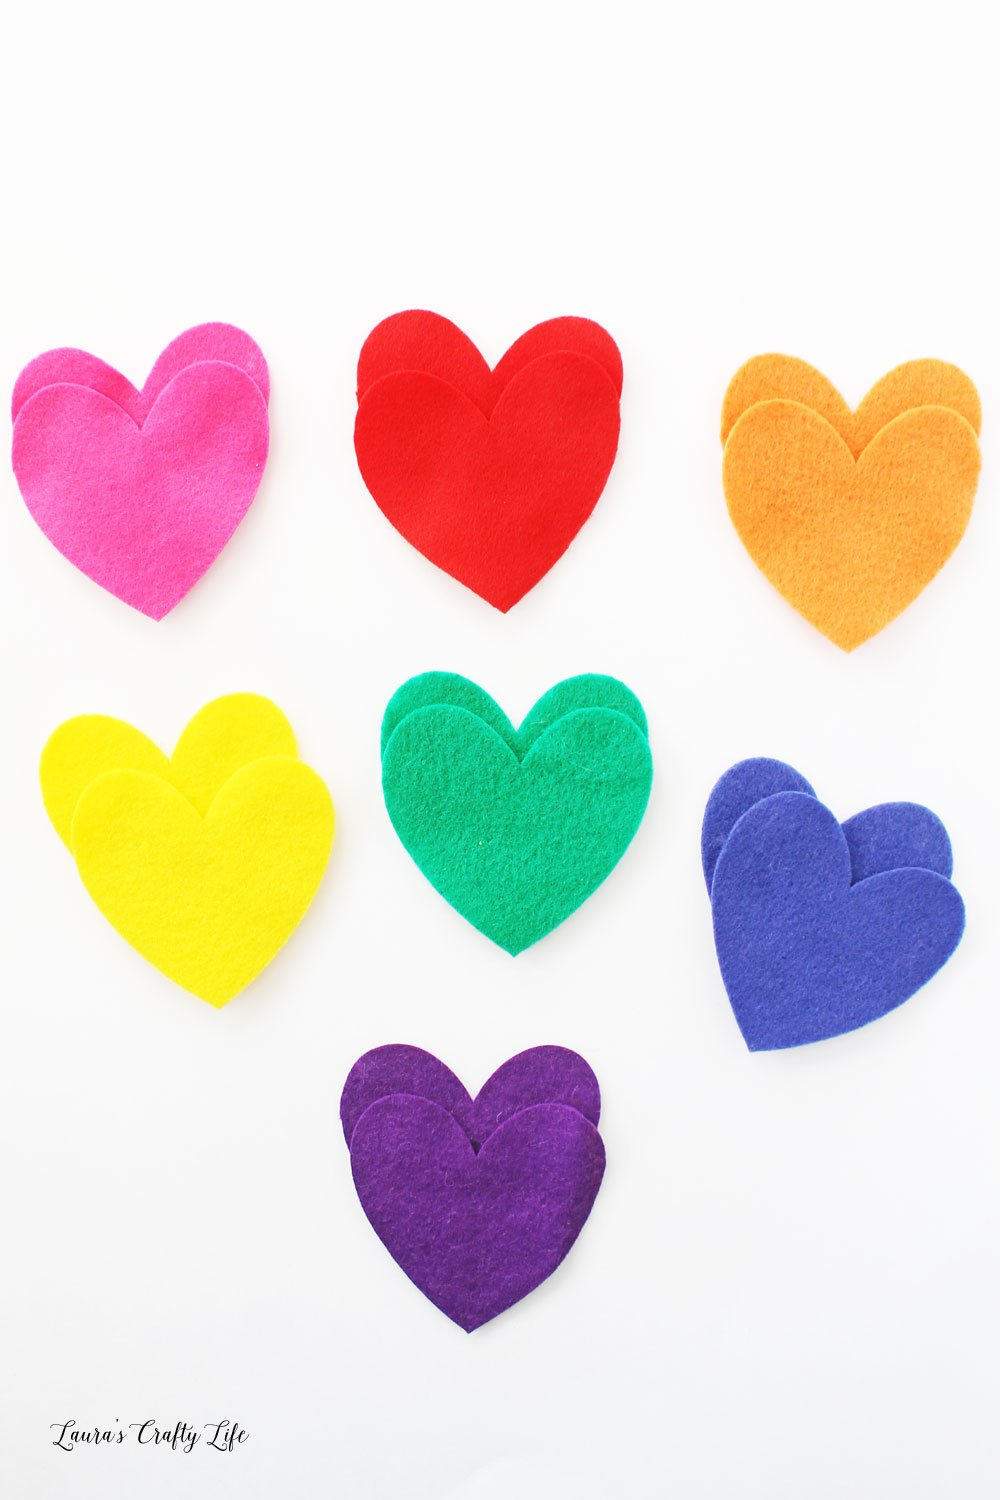 Cut out rainbow hearts from felt